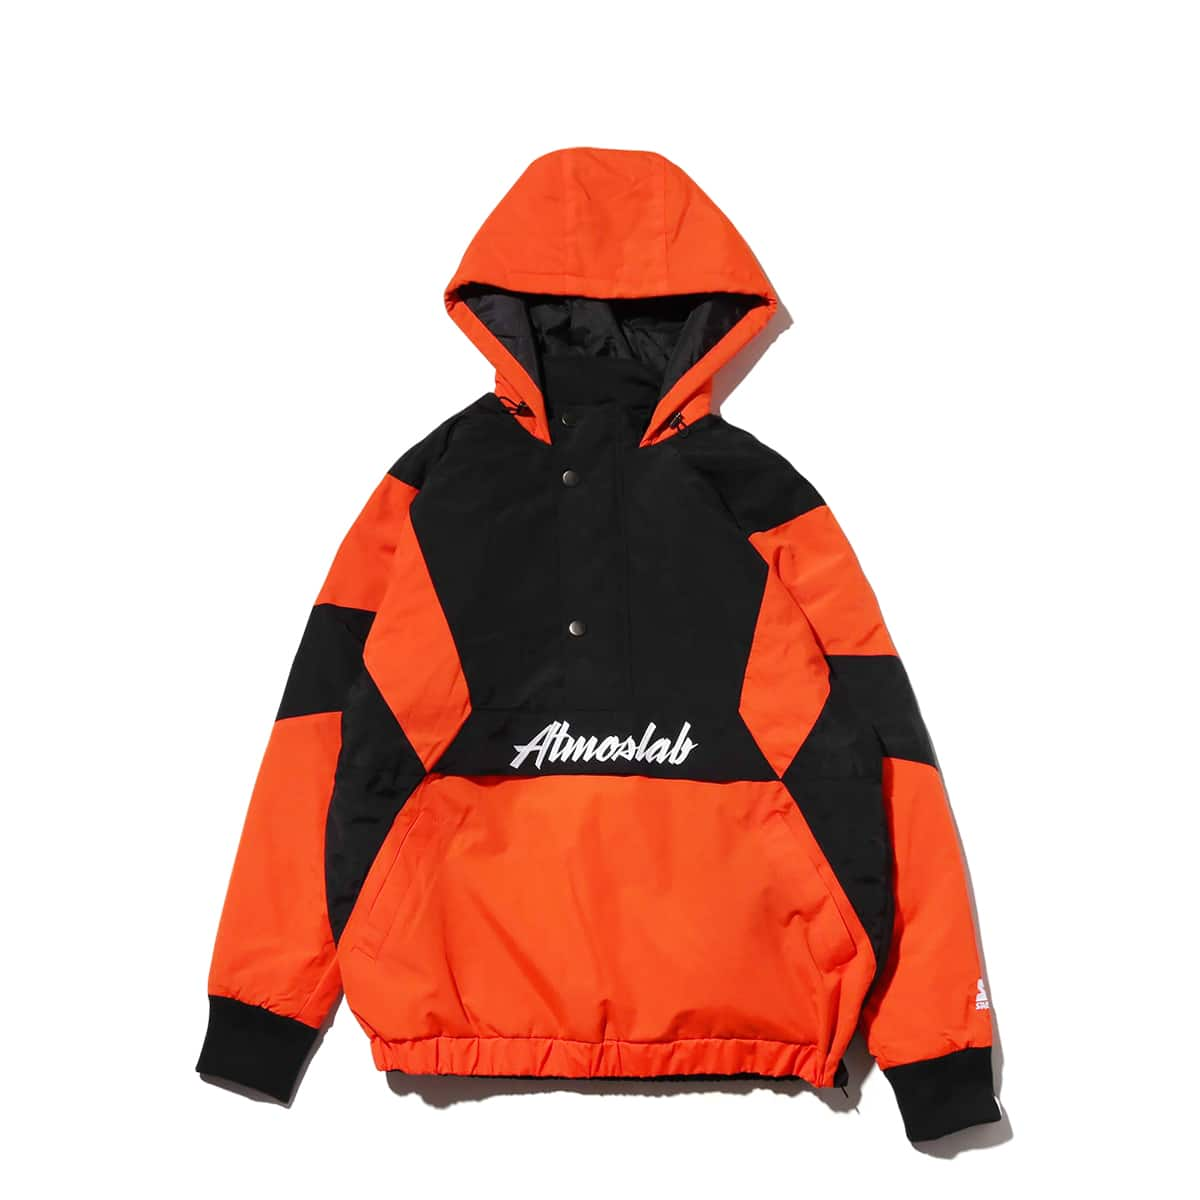 STARTER BLACK LABEL x ATMOS LAB HOCKEY ANORAK JACKET  orange_photo_large